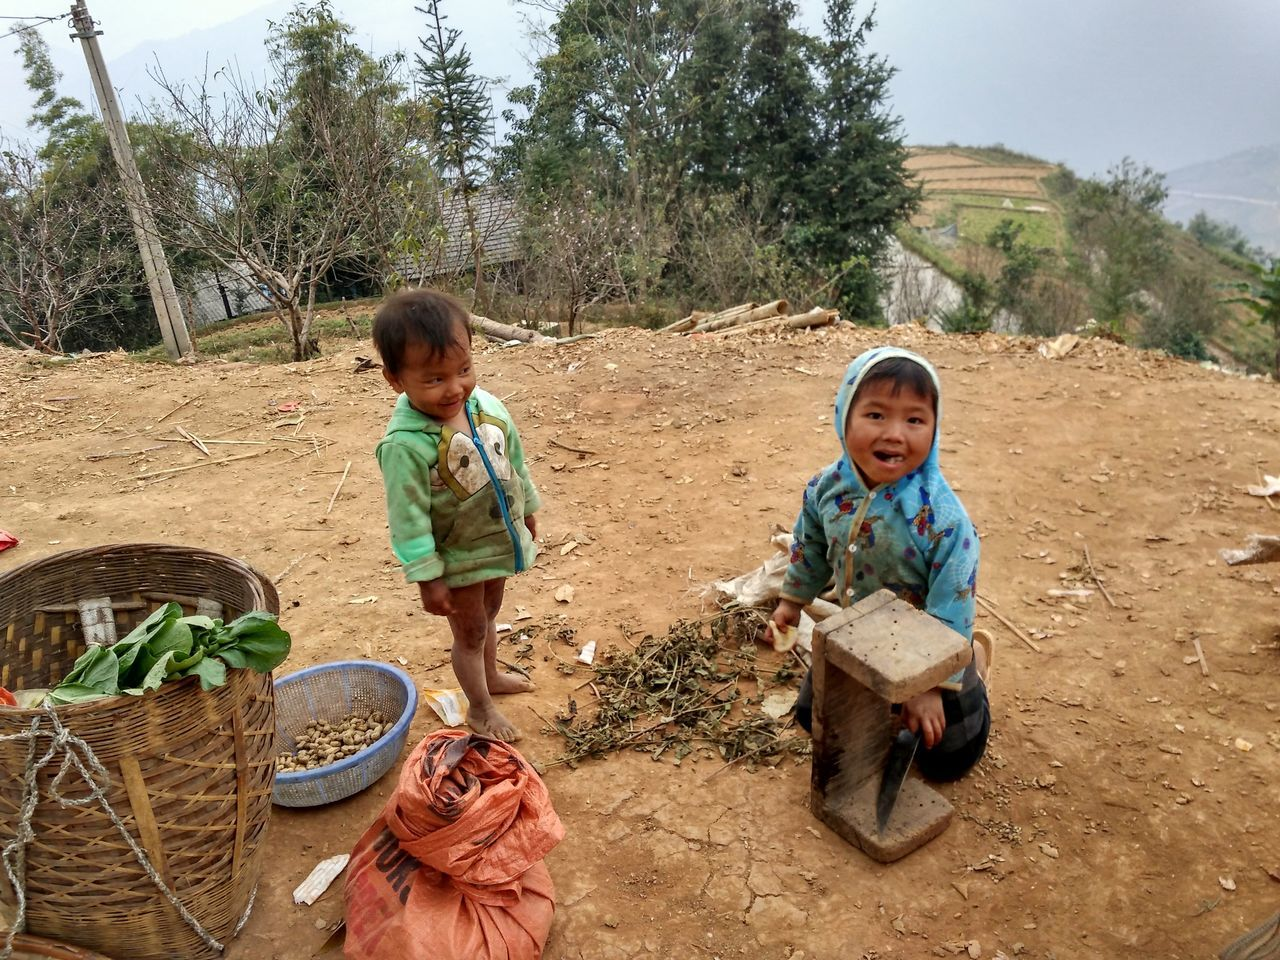 Cute kids on the road Childhood Children Ethnic Outdoors People Poorpeople Togetherness Travel